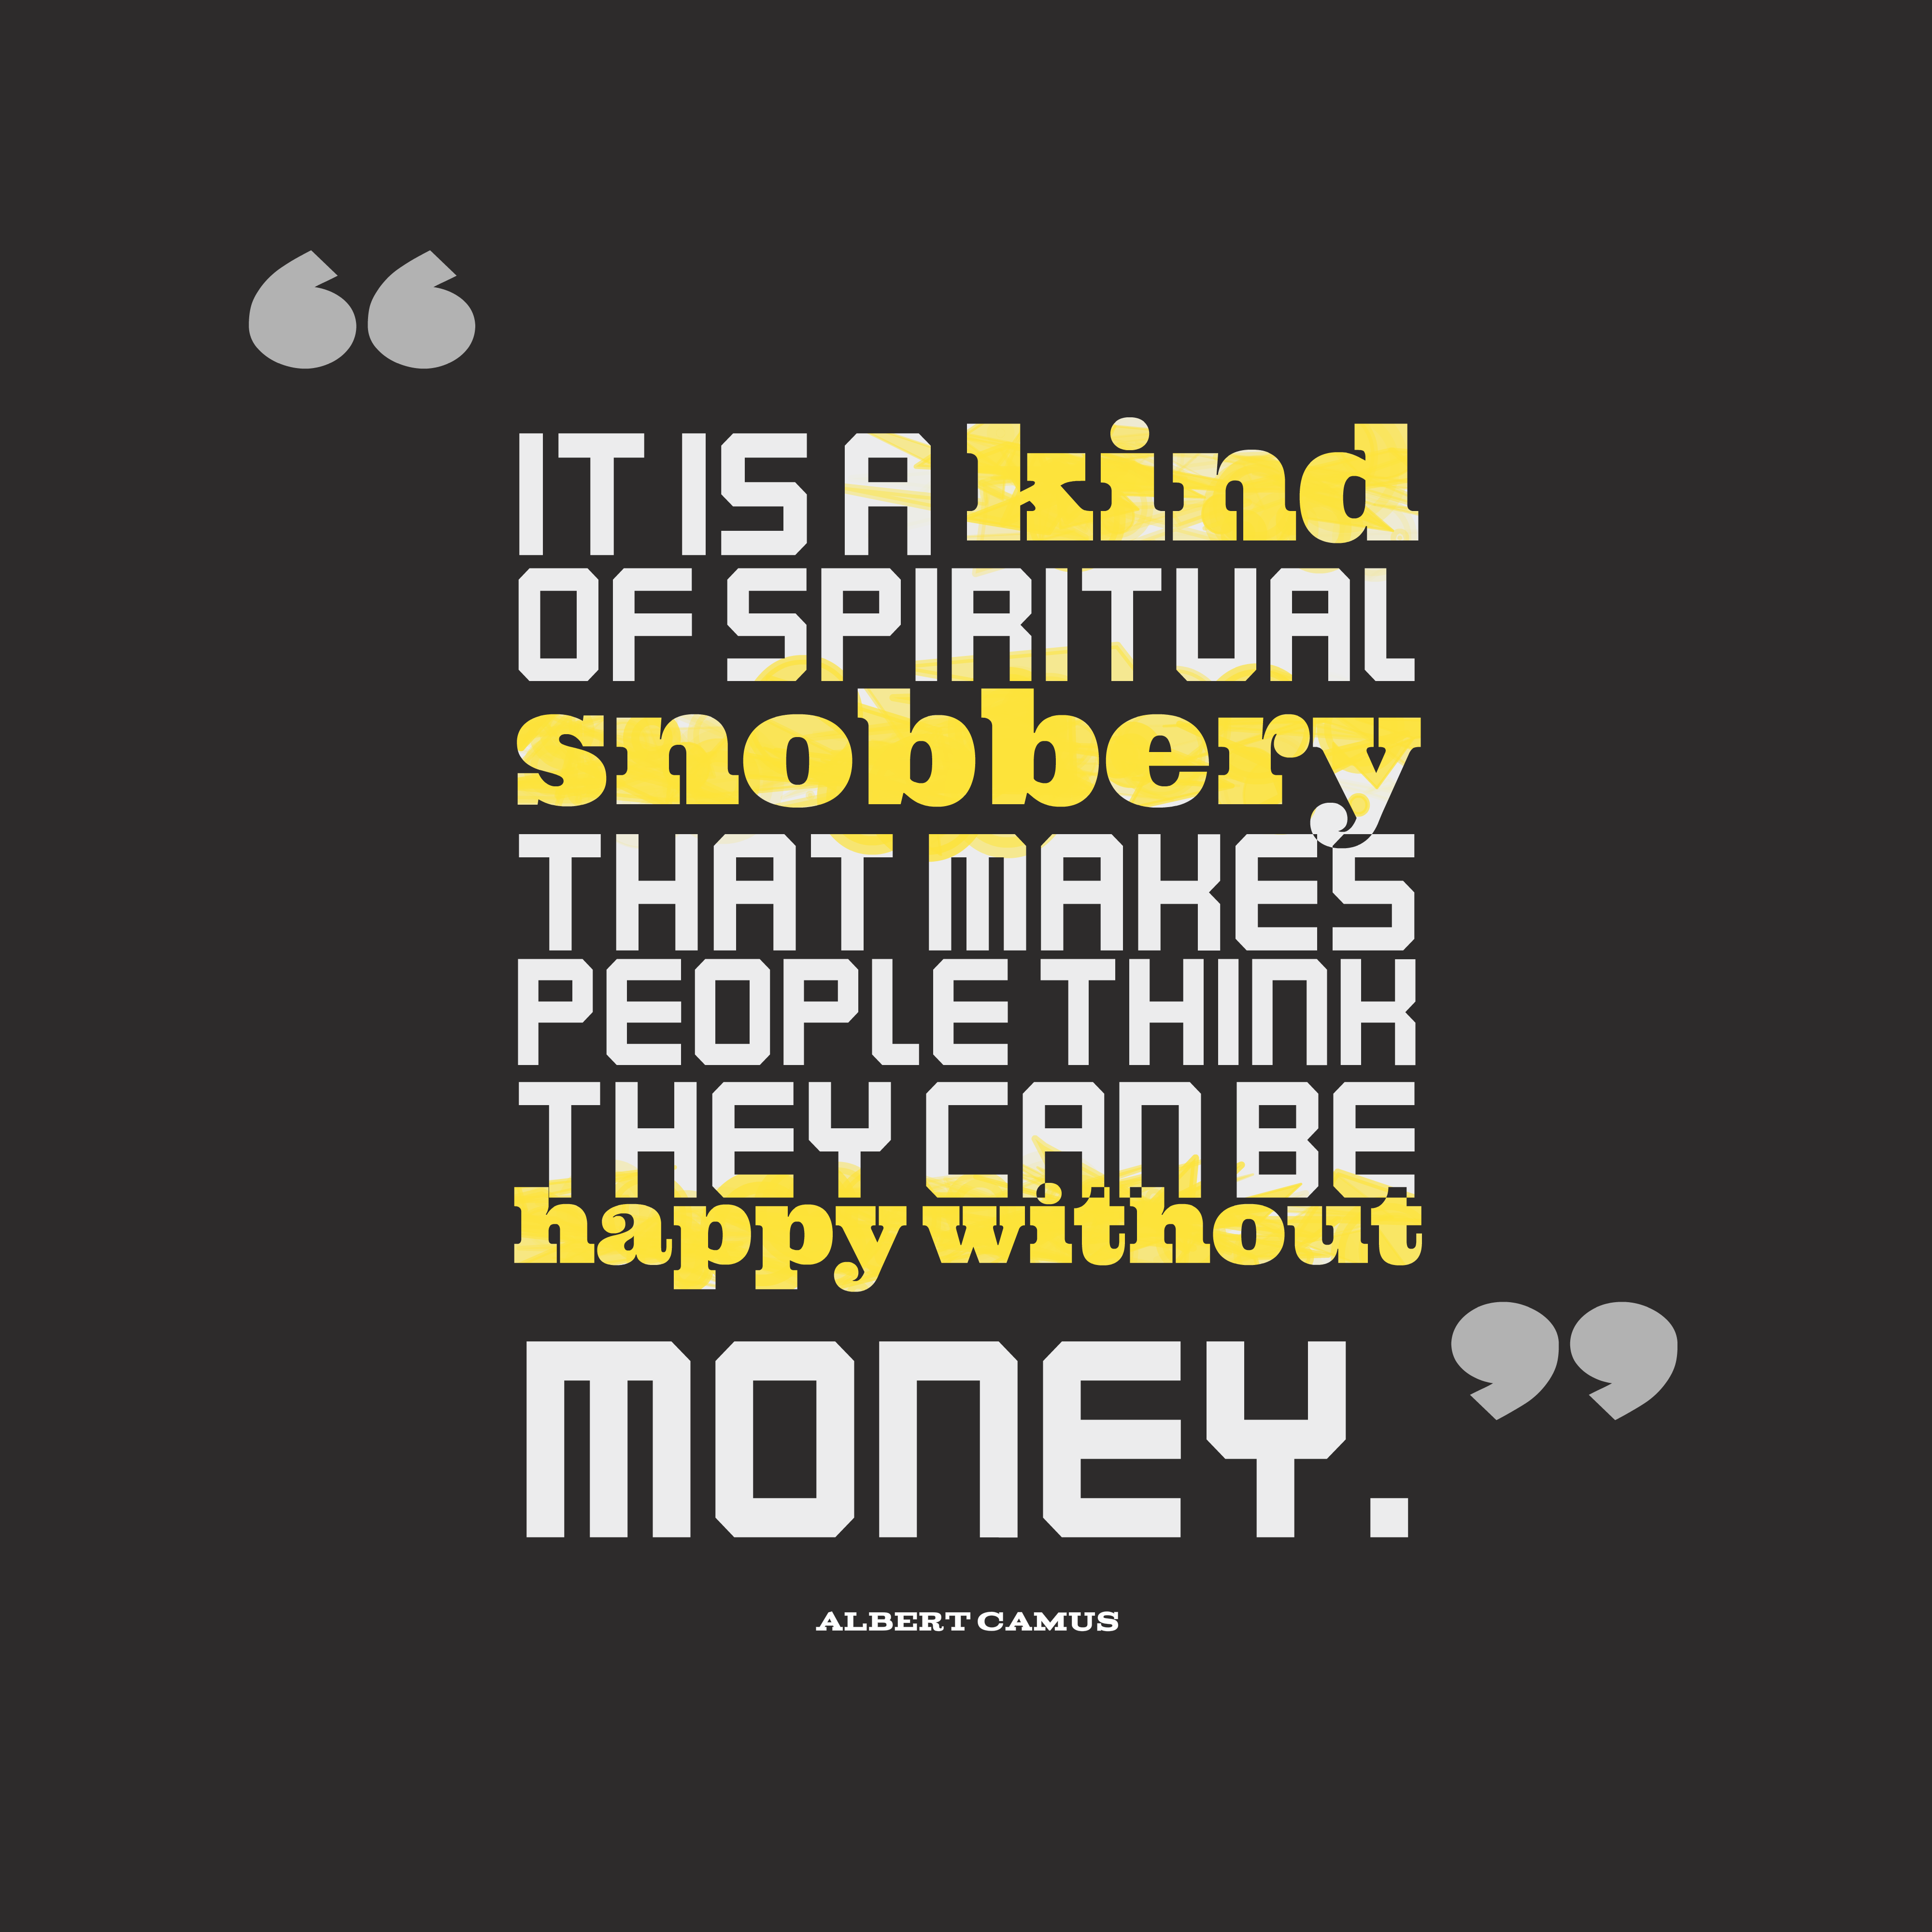 Quotes image of It is a kind of spiritual snobbery that makes people think they can be happy without money.